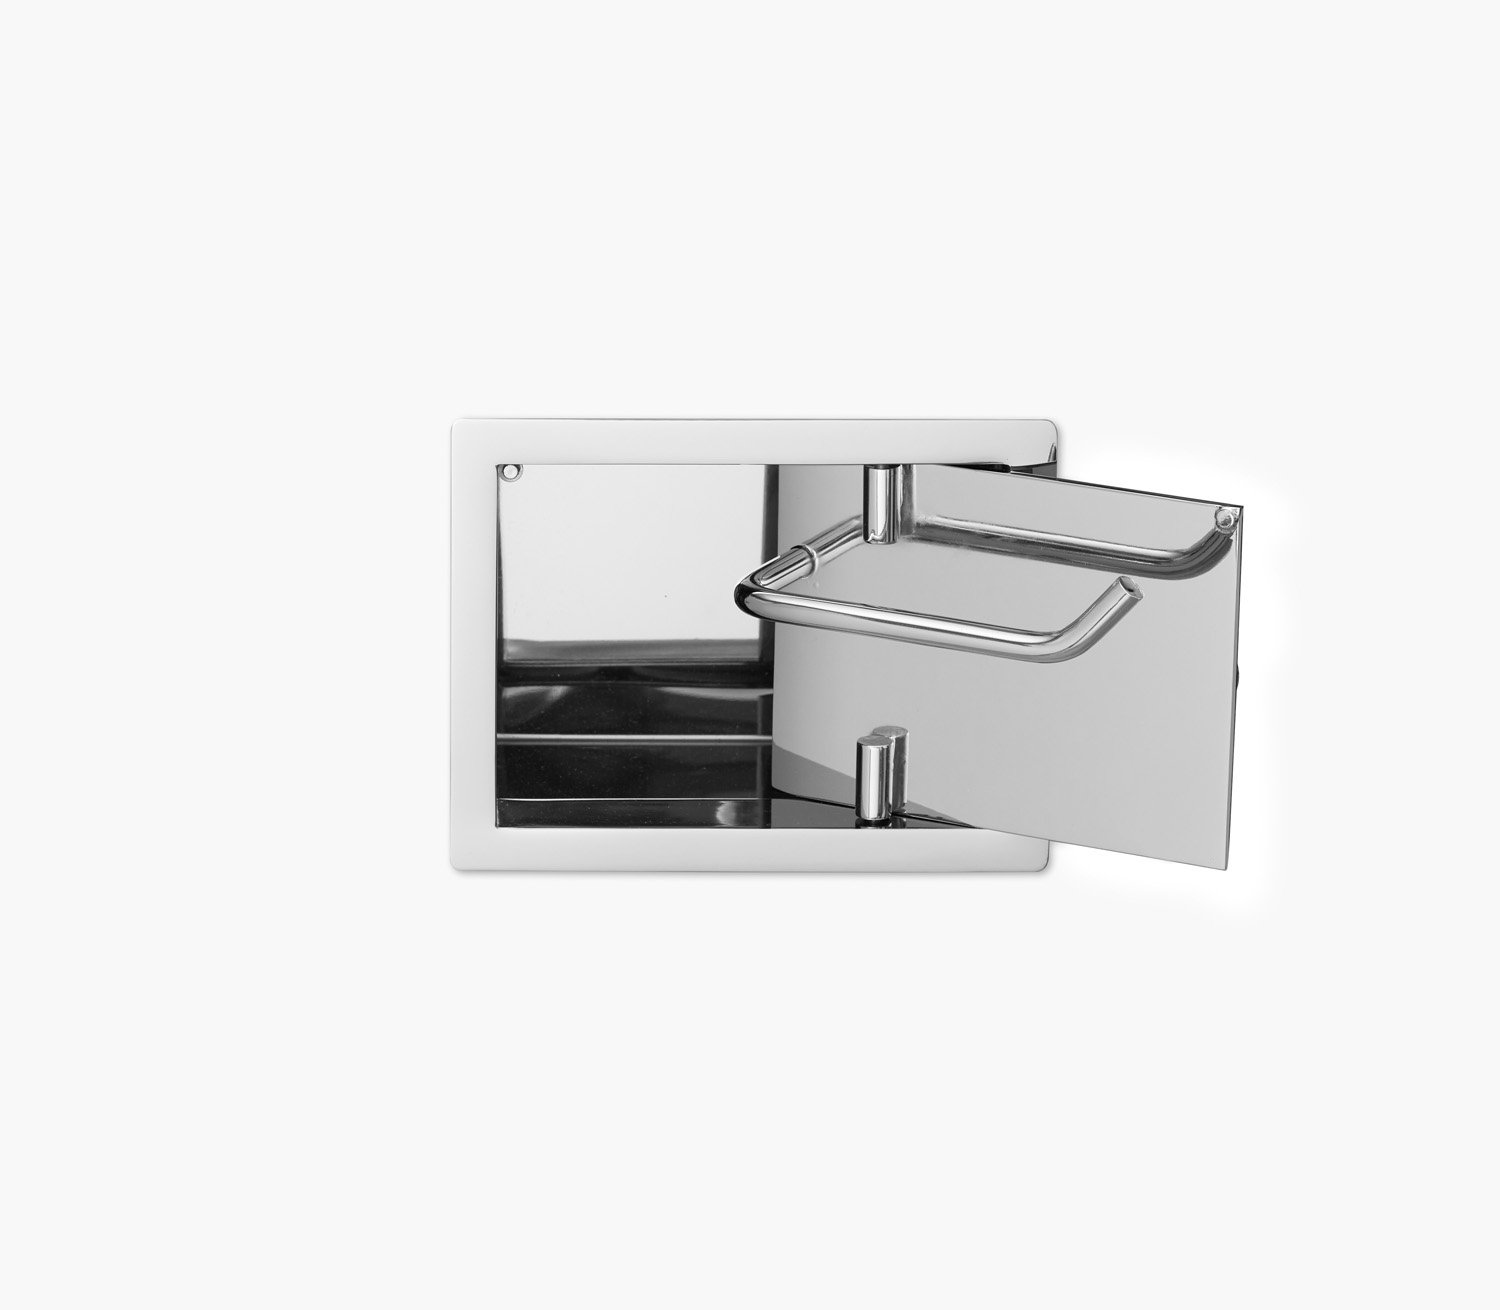 Wall Recessed Toilet Paper Holder II Product Image 5